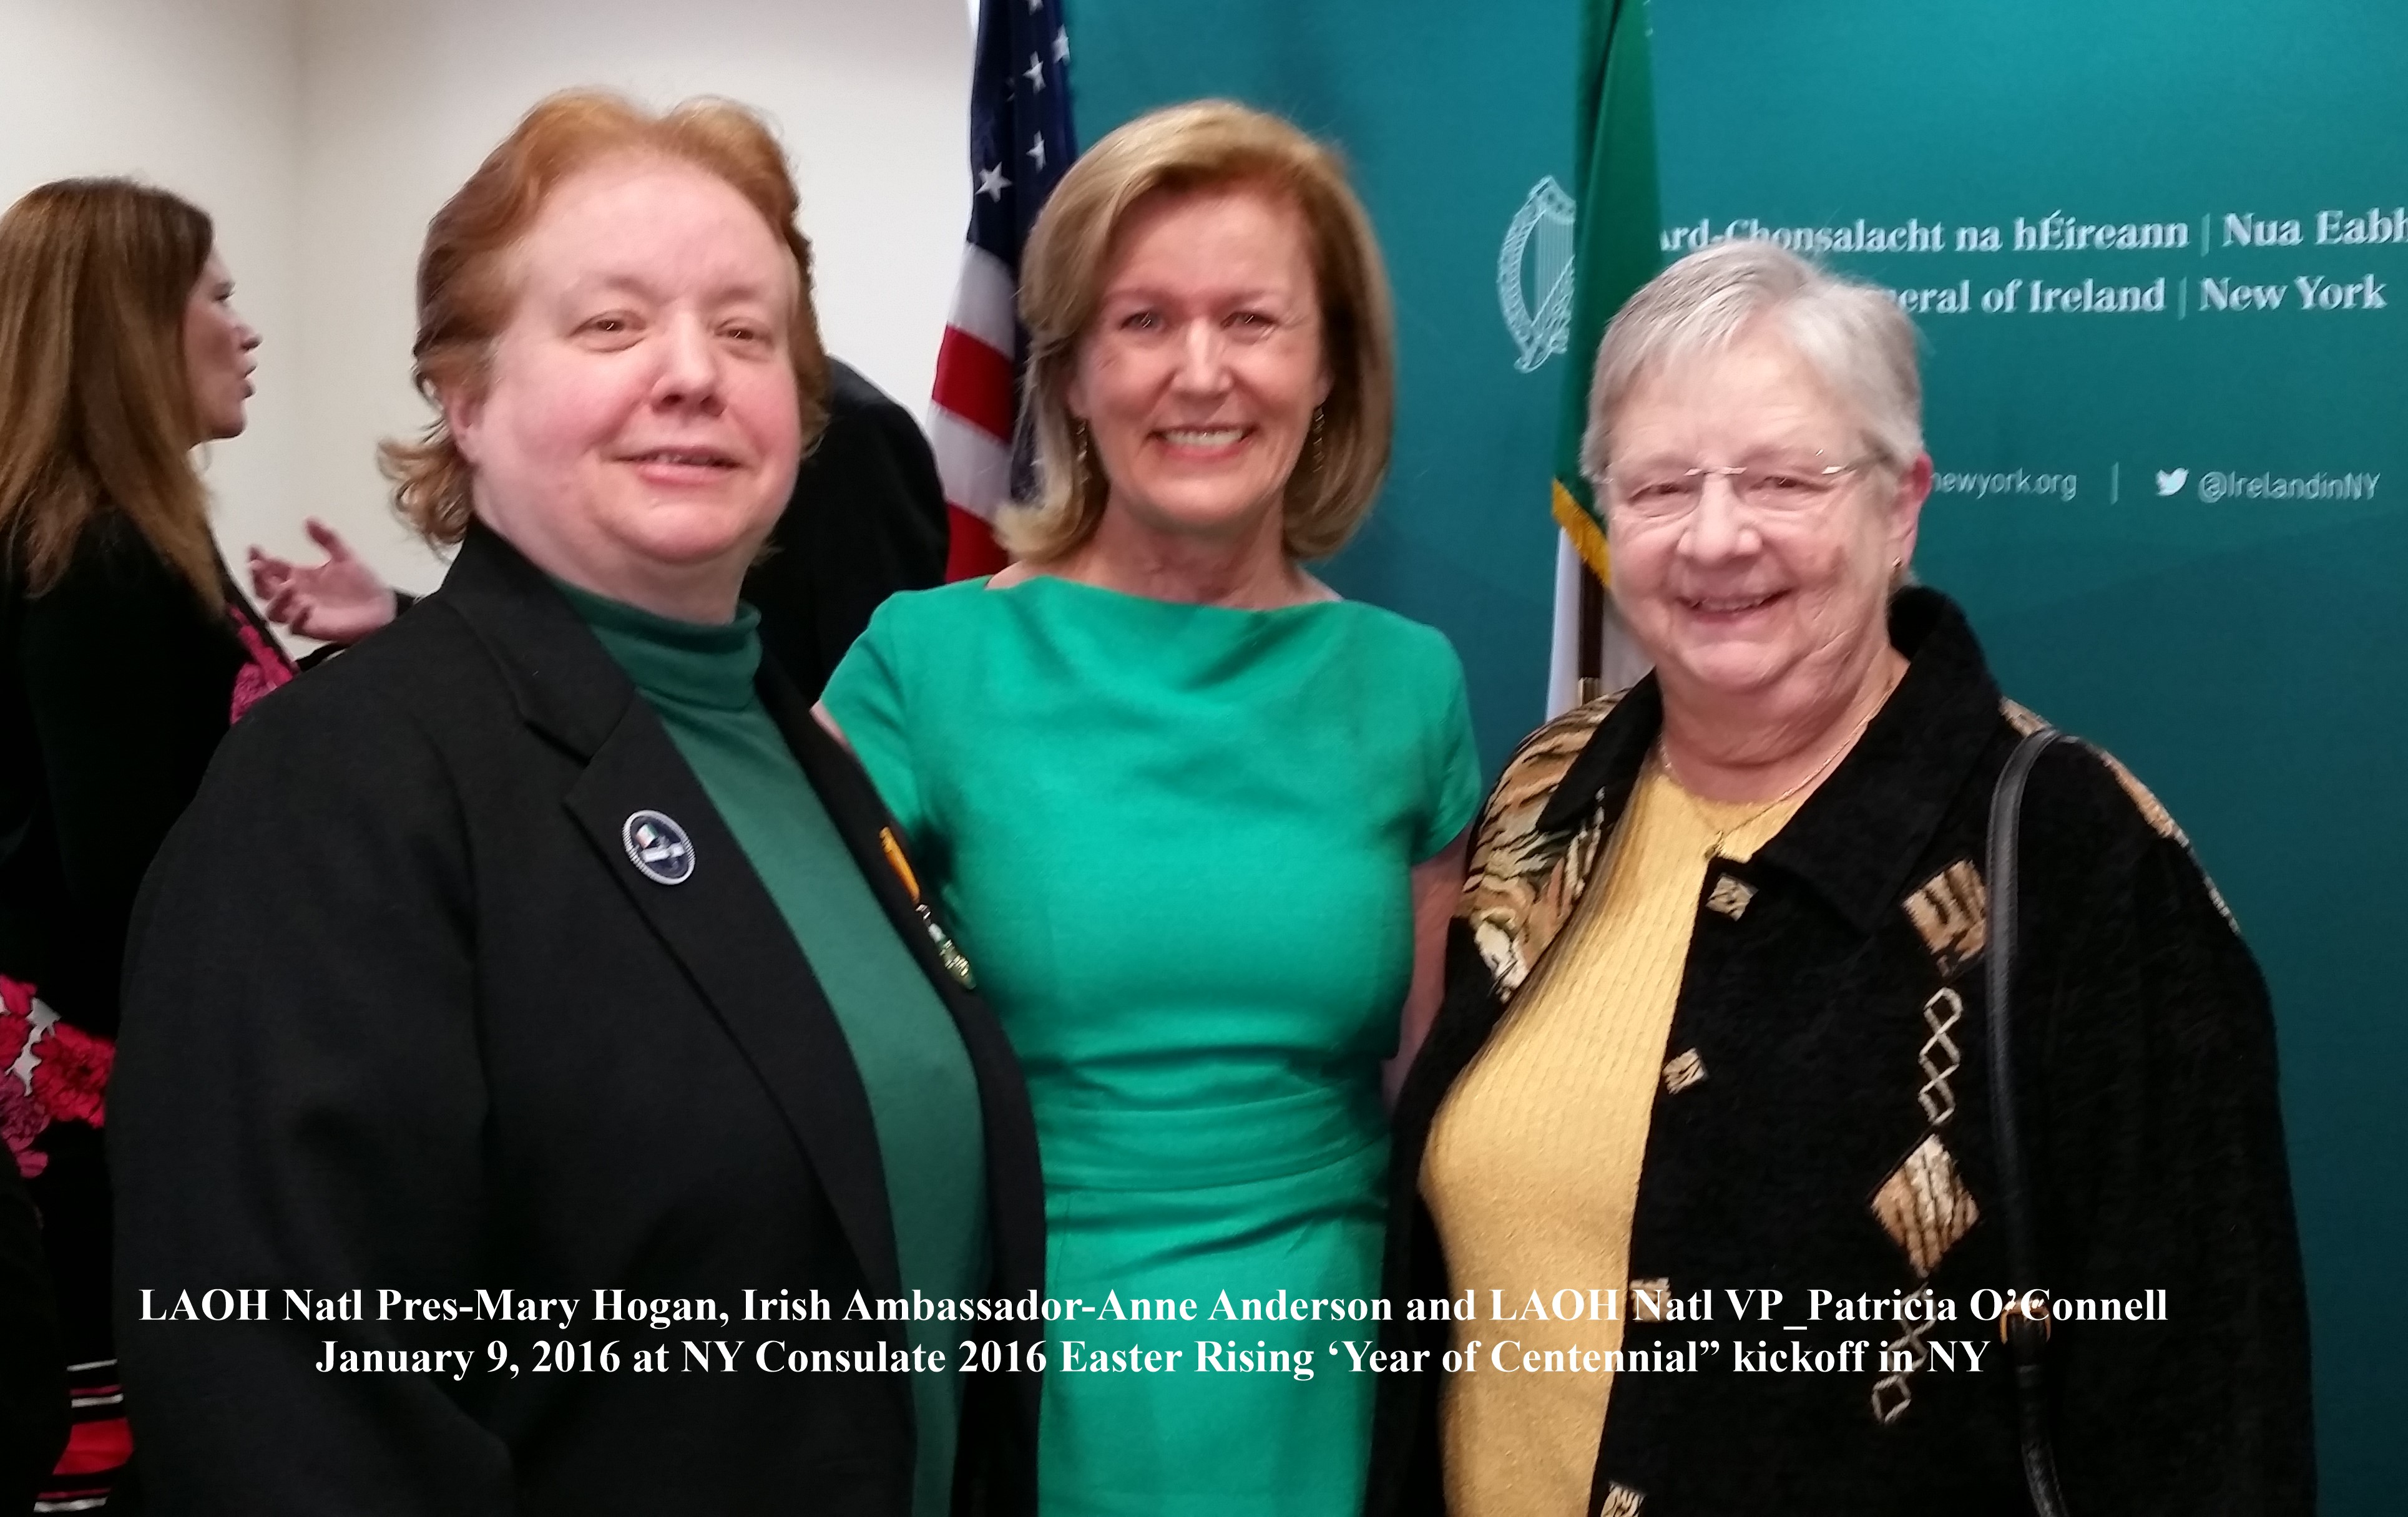 2016 Centennial Kickoff Mary Hogan, Anne Anderson, and Pat O'Connell January 2016